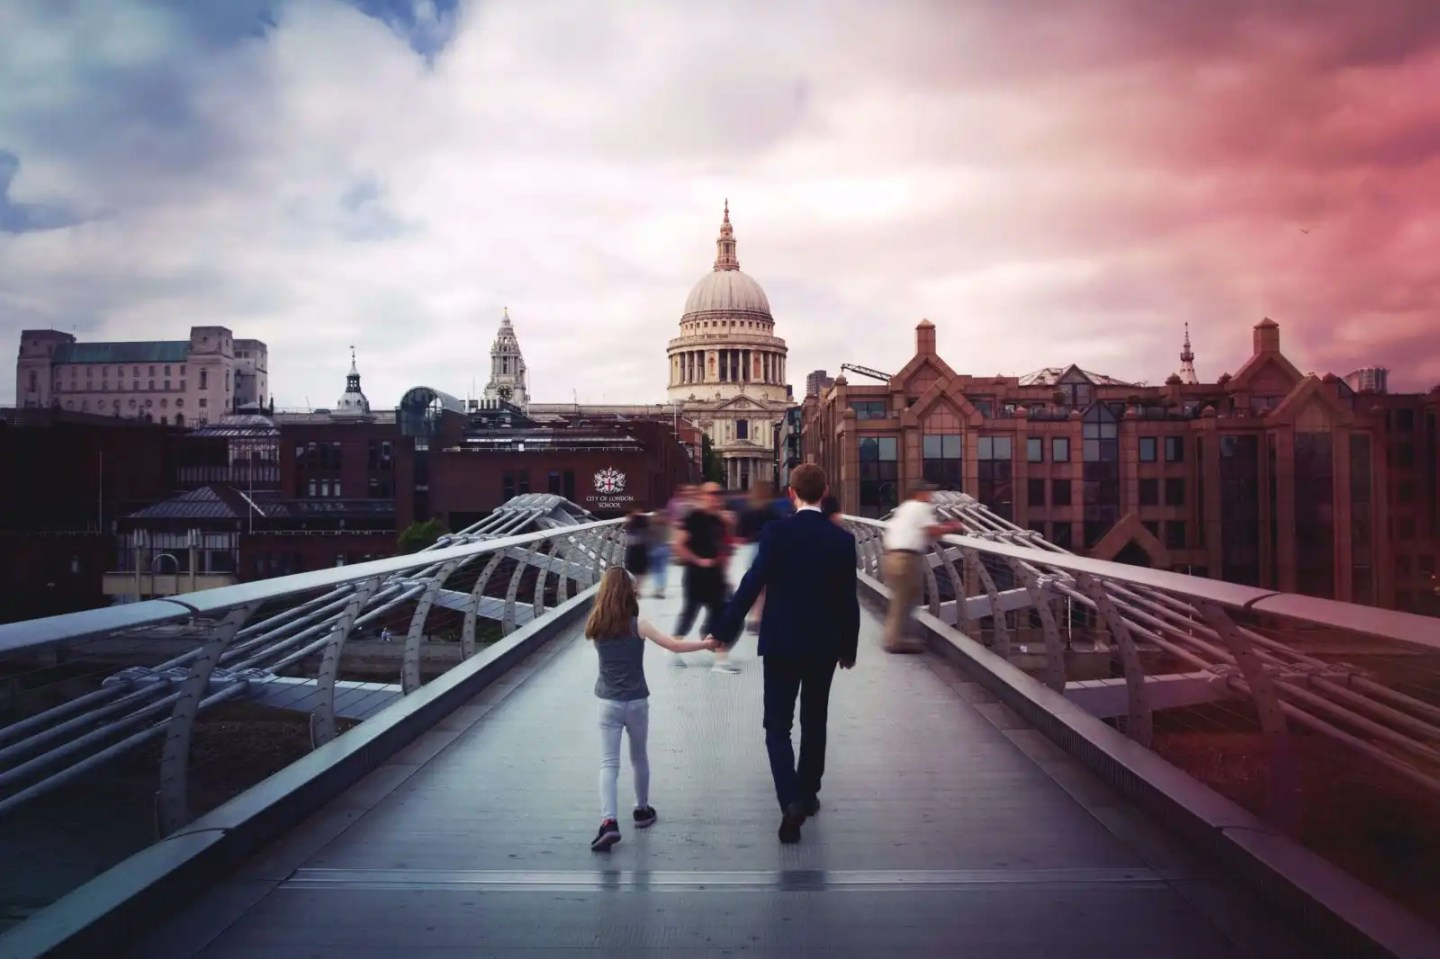 The Millennium bridge to St Pauls Cathedral in London, UK